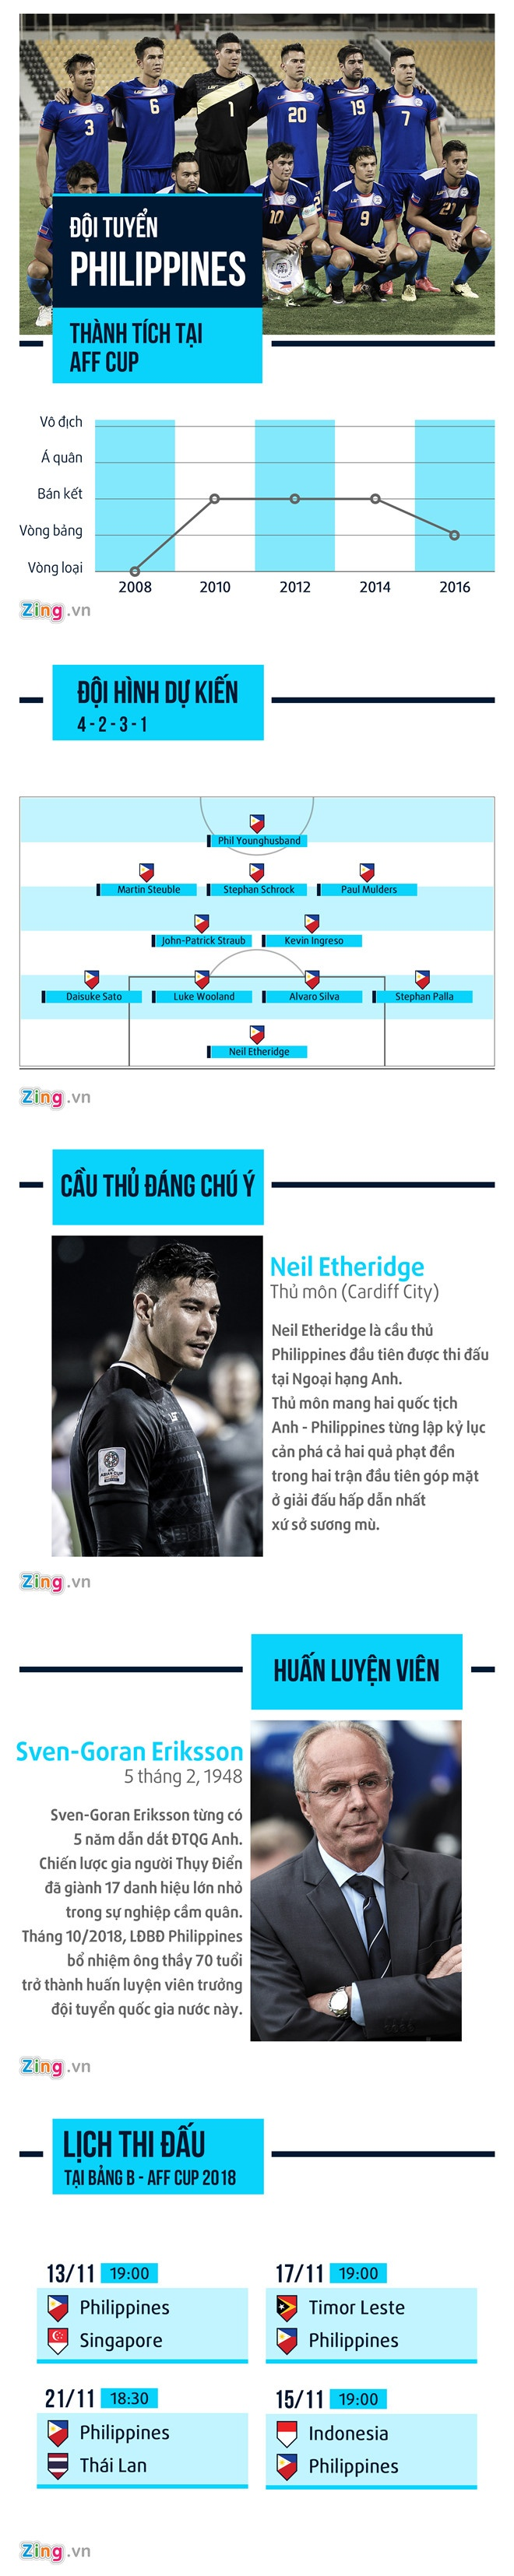 Philippines 1-0 Singapore: HLV Eriksson co chien thang tai AFF Cup hinh anh 6